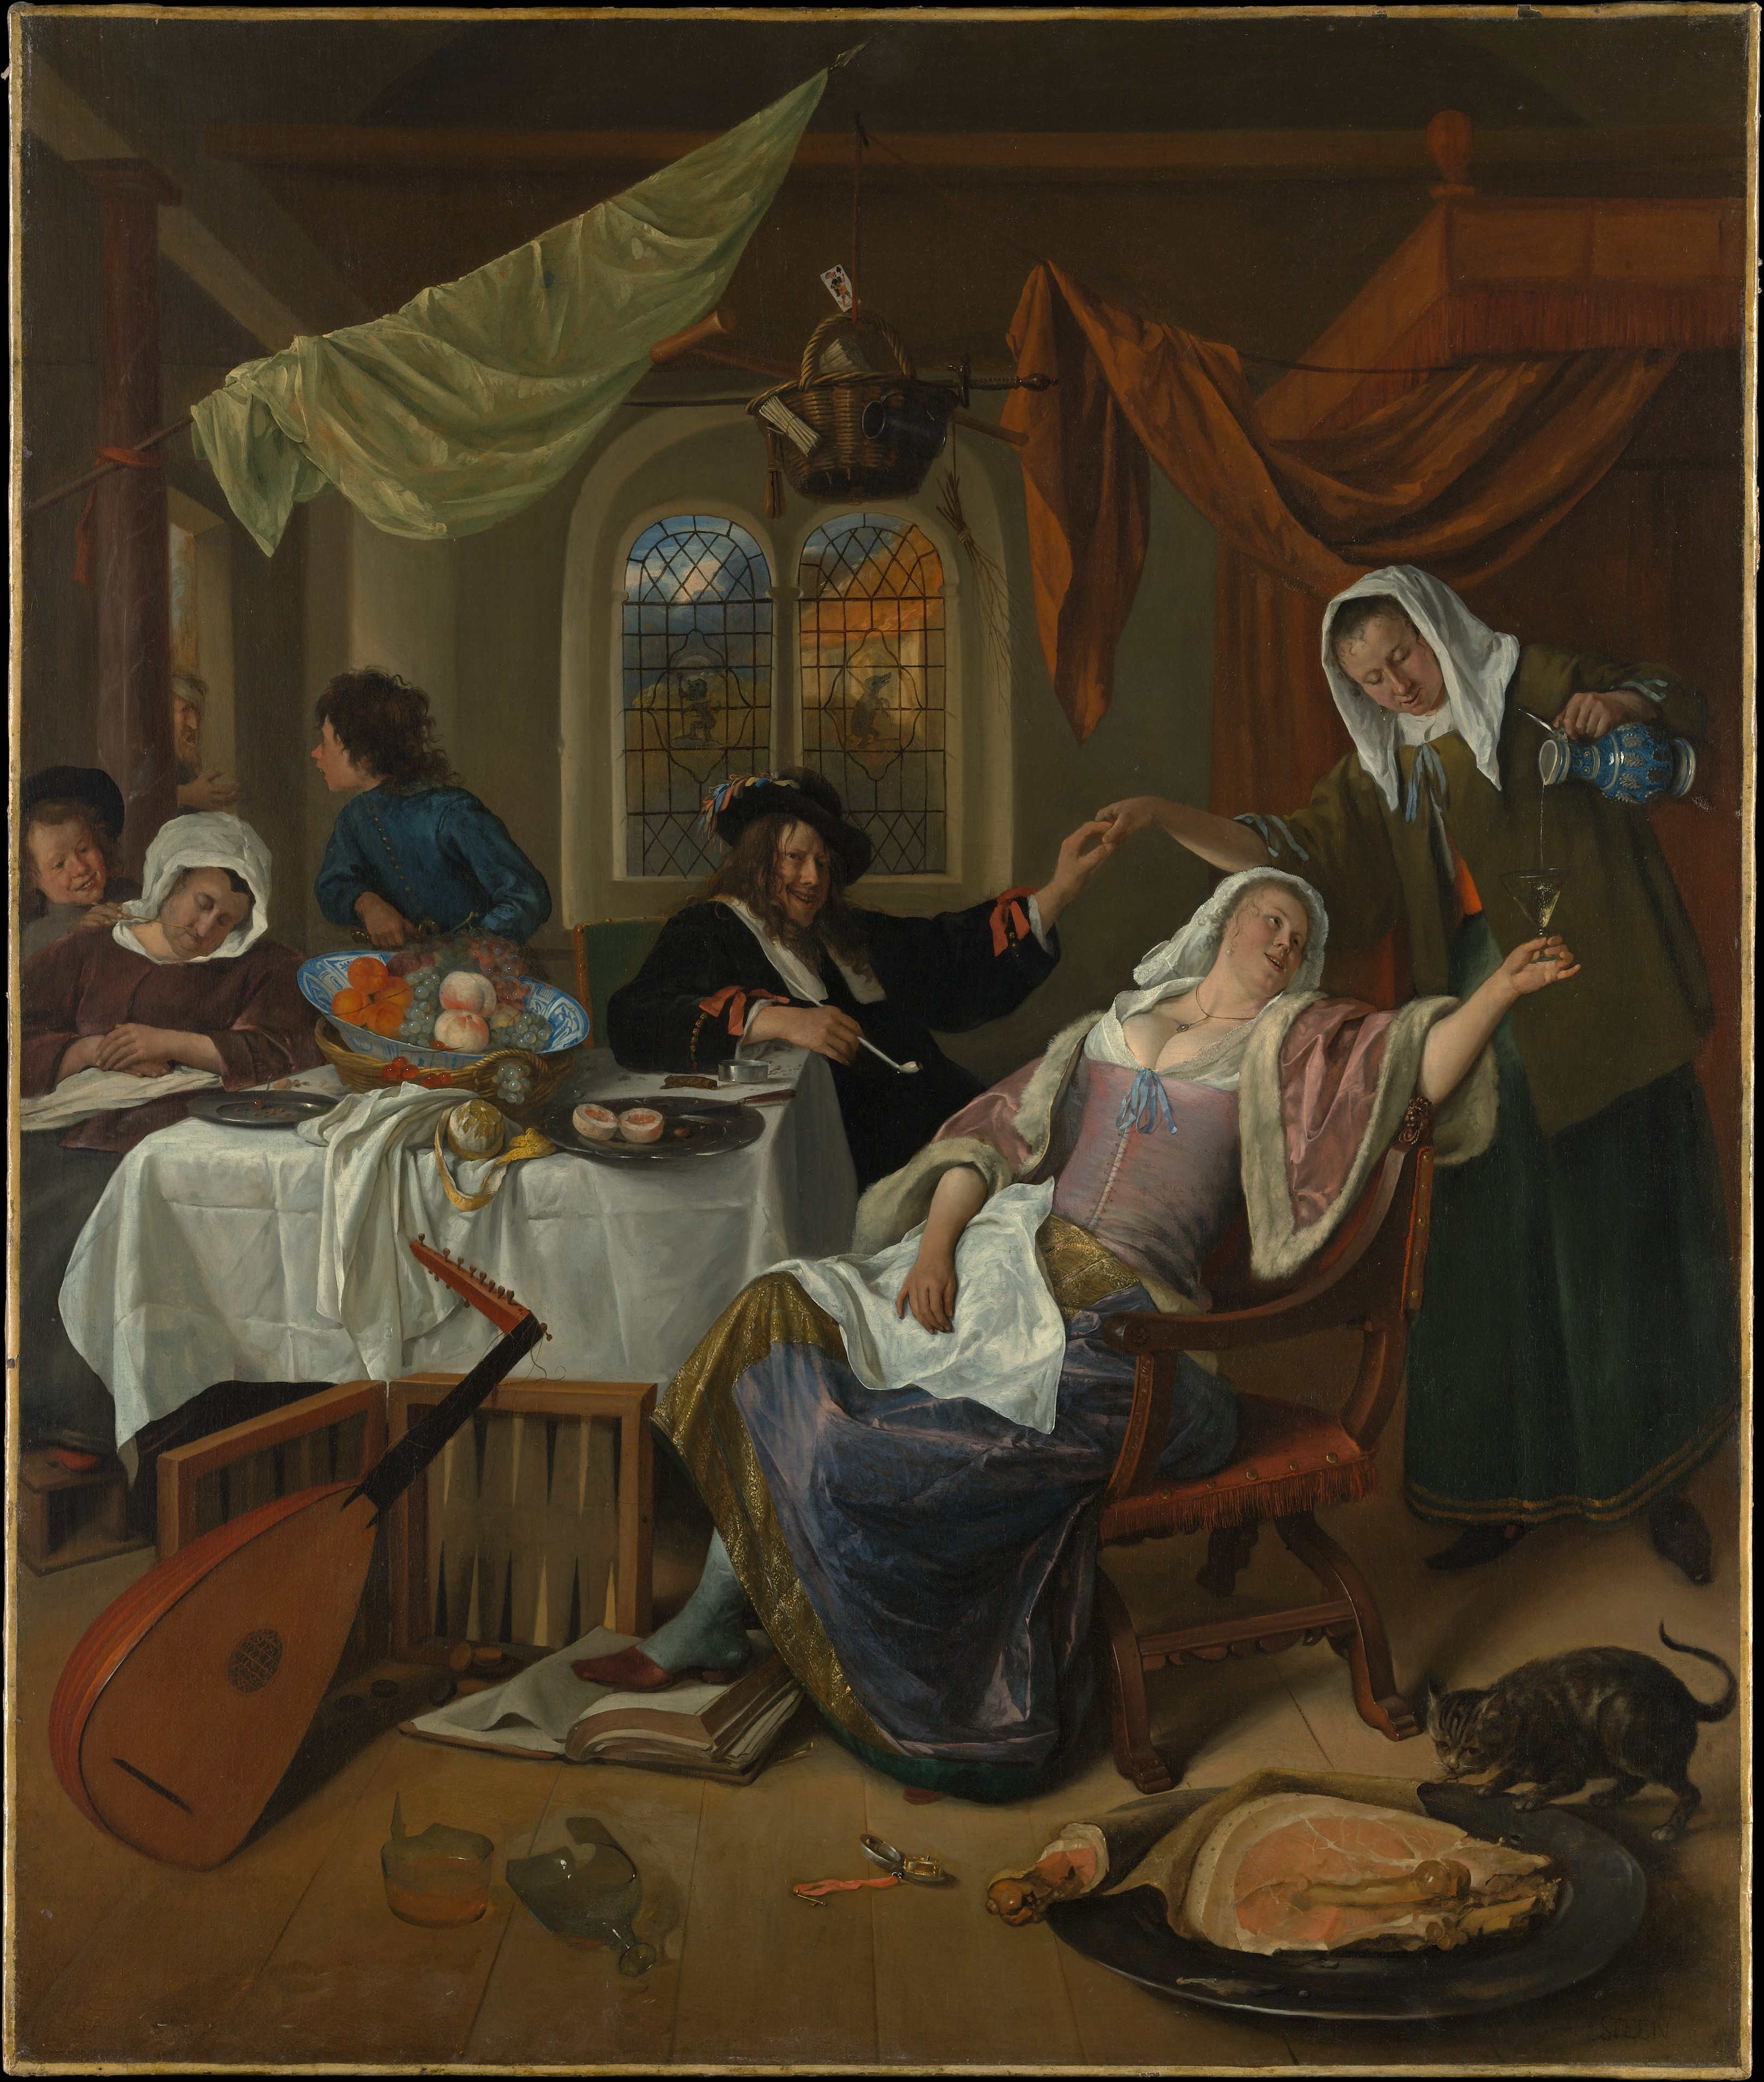 The Dissolute Household 1663-4 by Jan Steen